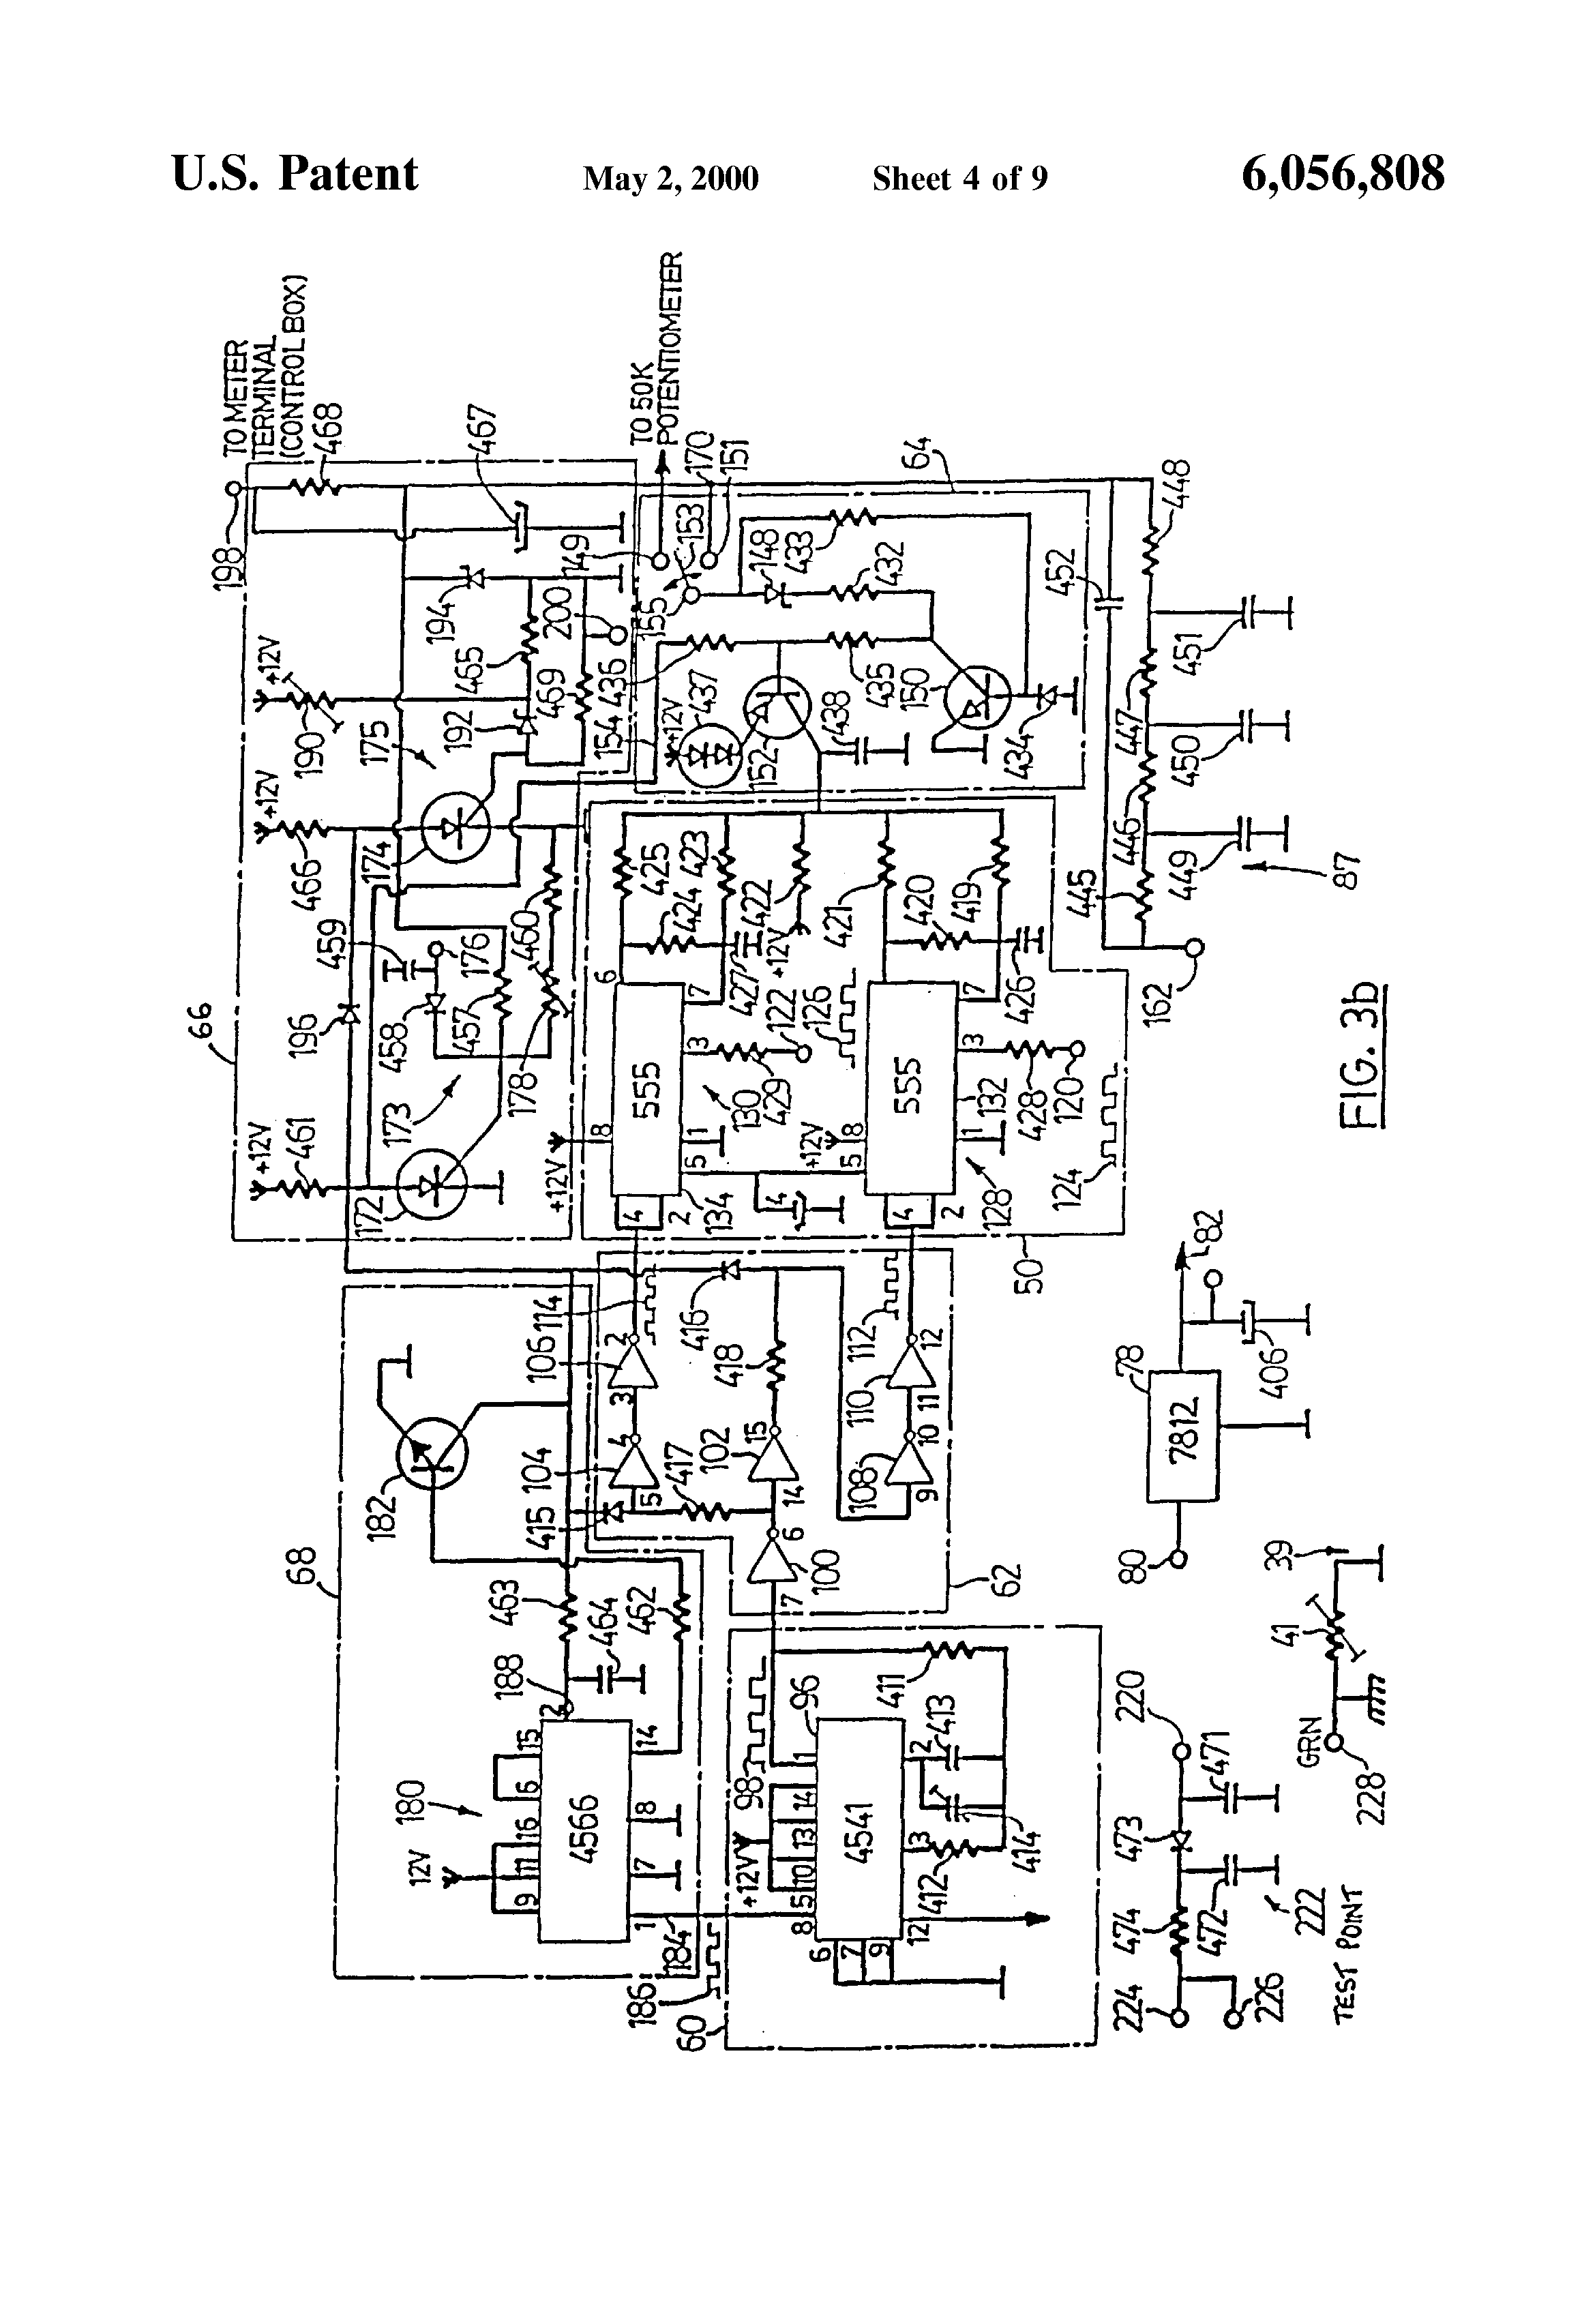 Ionizer Transormer Dc Power Supply Wiring Diagram Detailed 12v Supplies Patent Us6056808 Modular And Low Google Patents Schematic